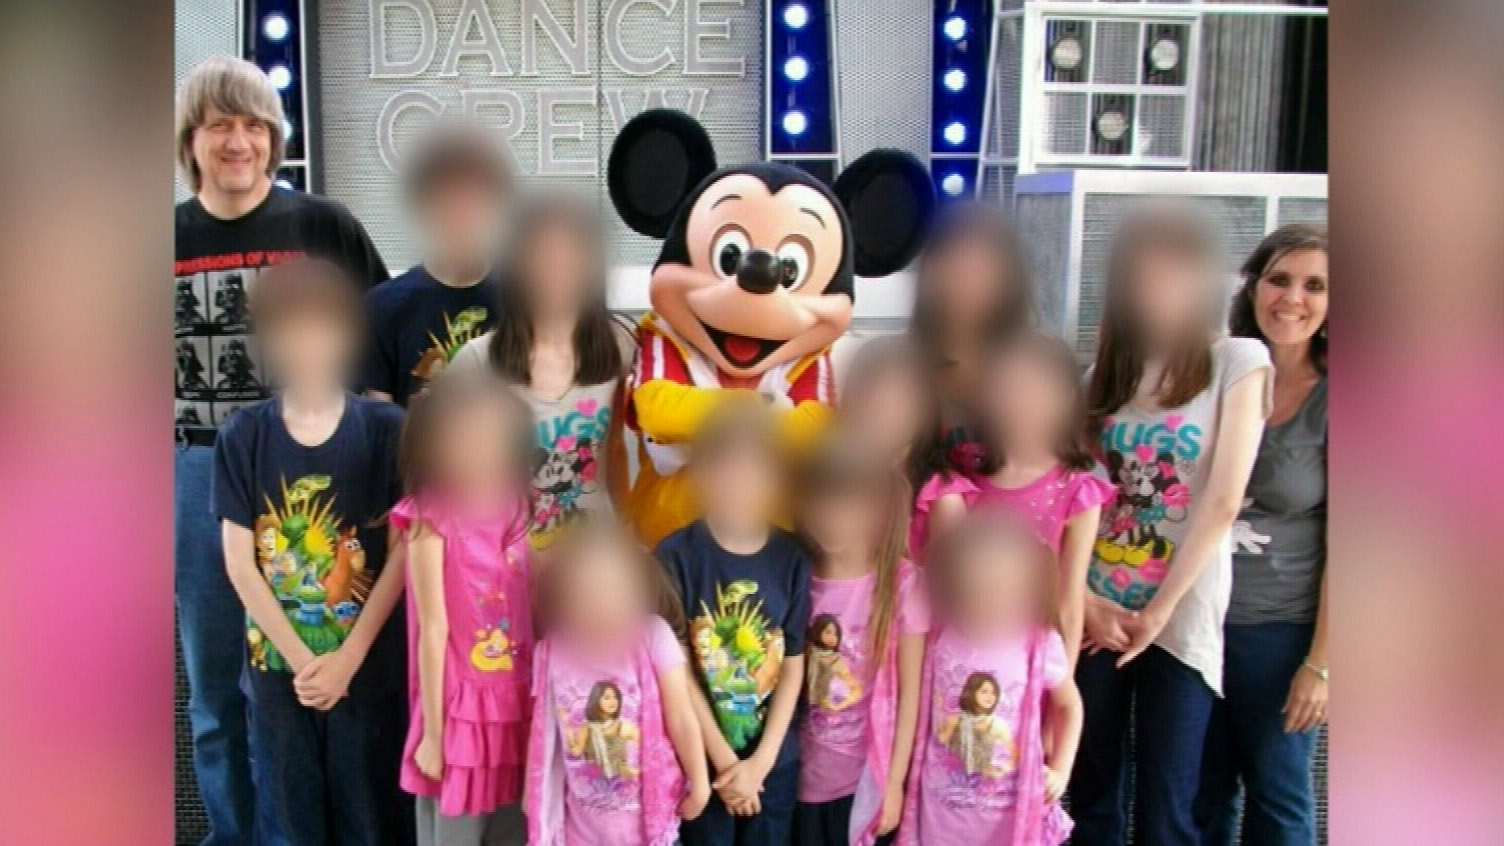 Disturbing details emerge over thirteen children kept captive